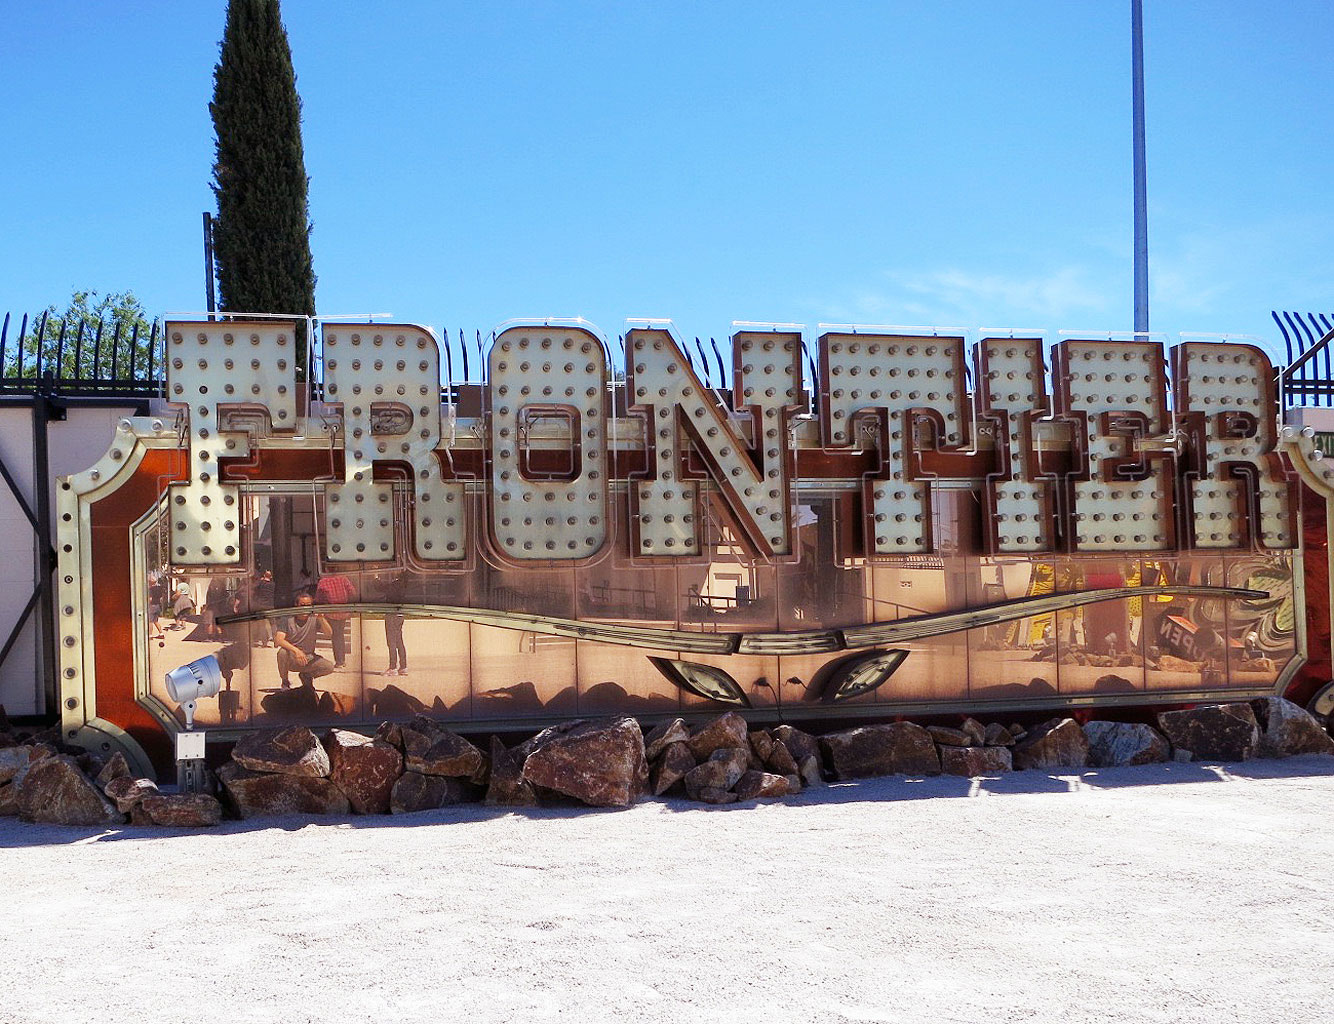 aiga-eye-on-design-las-vegas-neon-museum-boneyard-frontier-sign.jpg